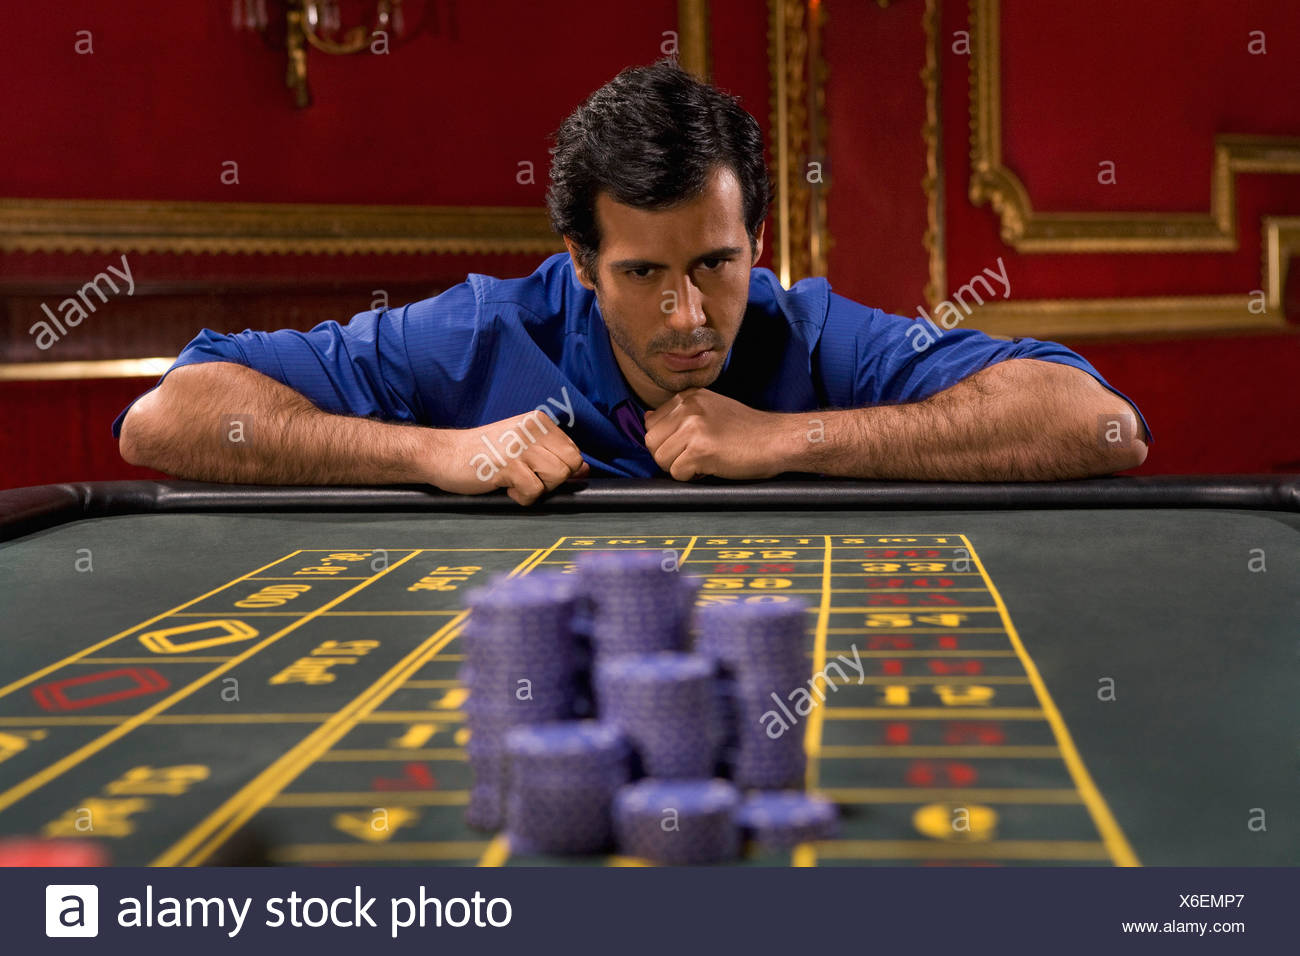 Anxious man looking bet on gaming table - Stock Image